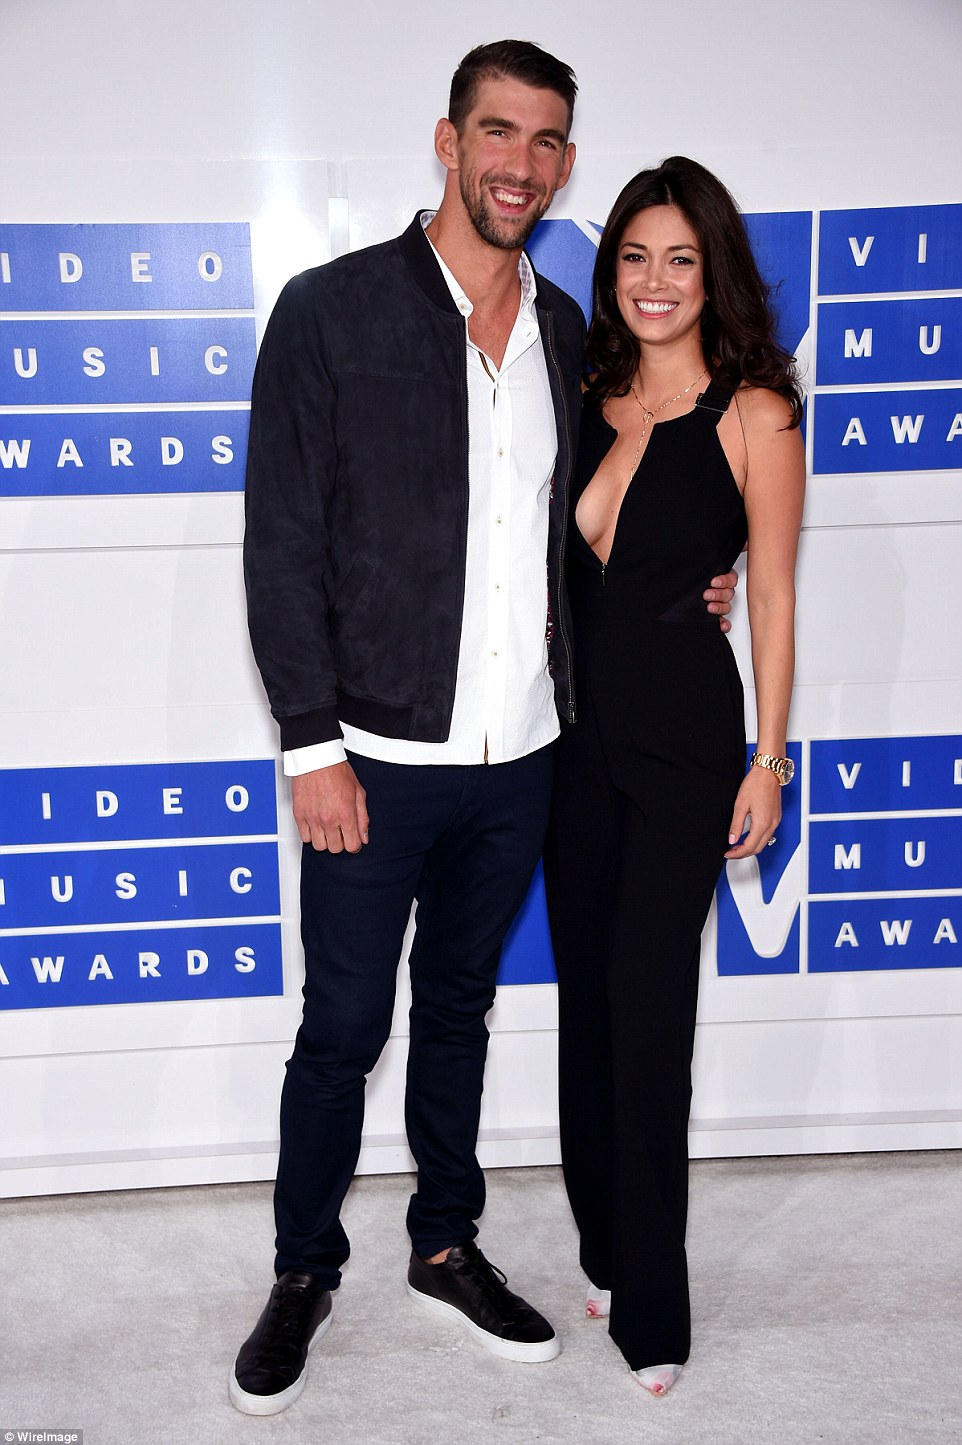 Loved up! Olympic swimmer Michael Phelps brought along fiancee Nicole Johnson